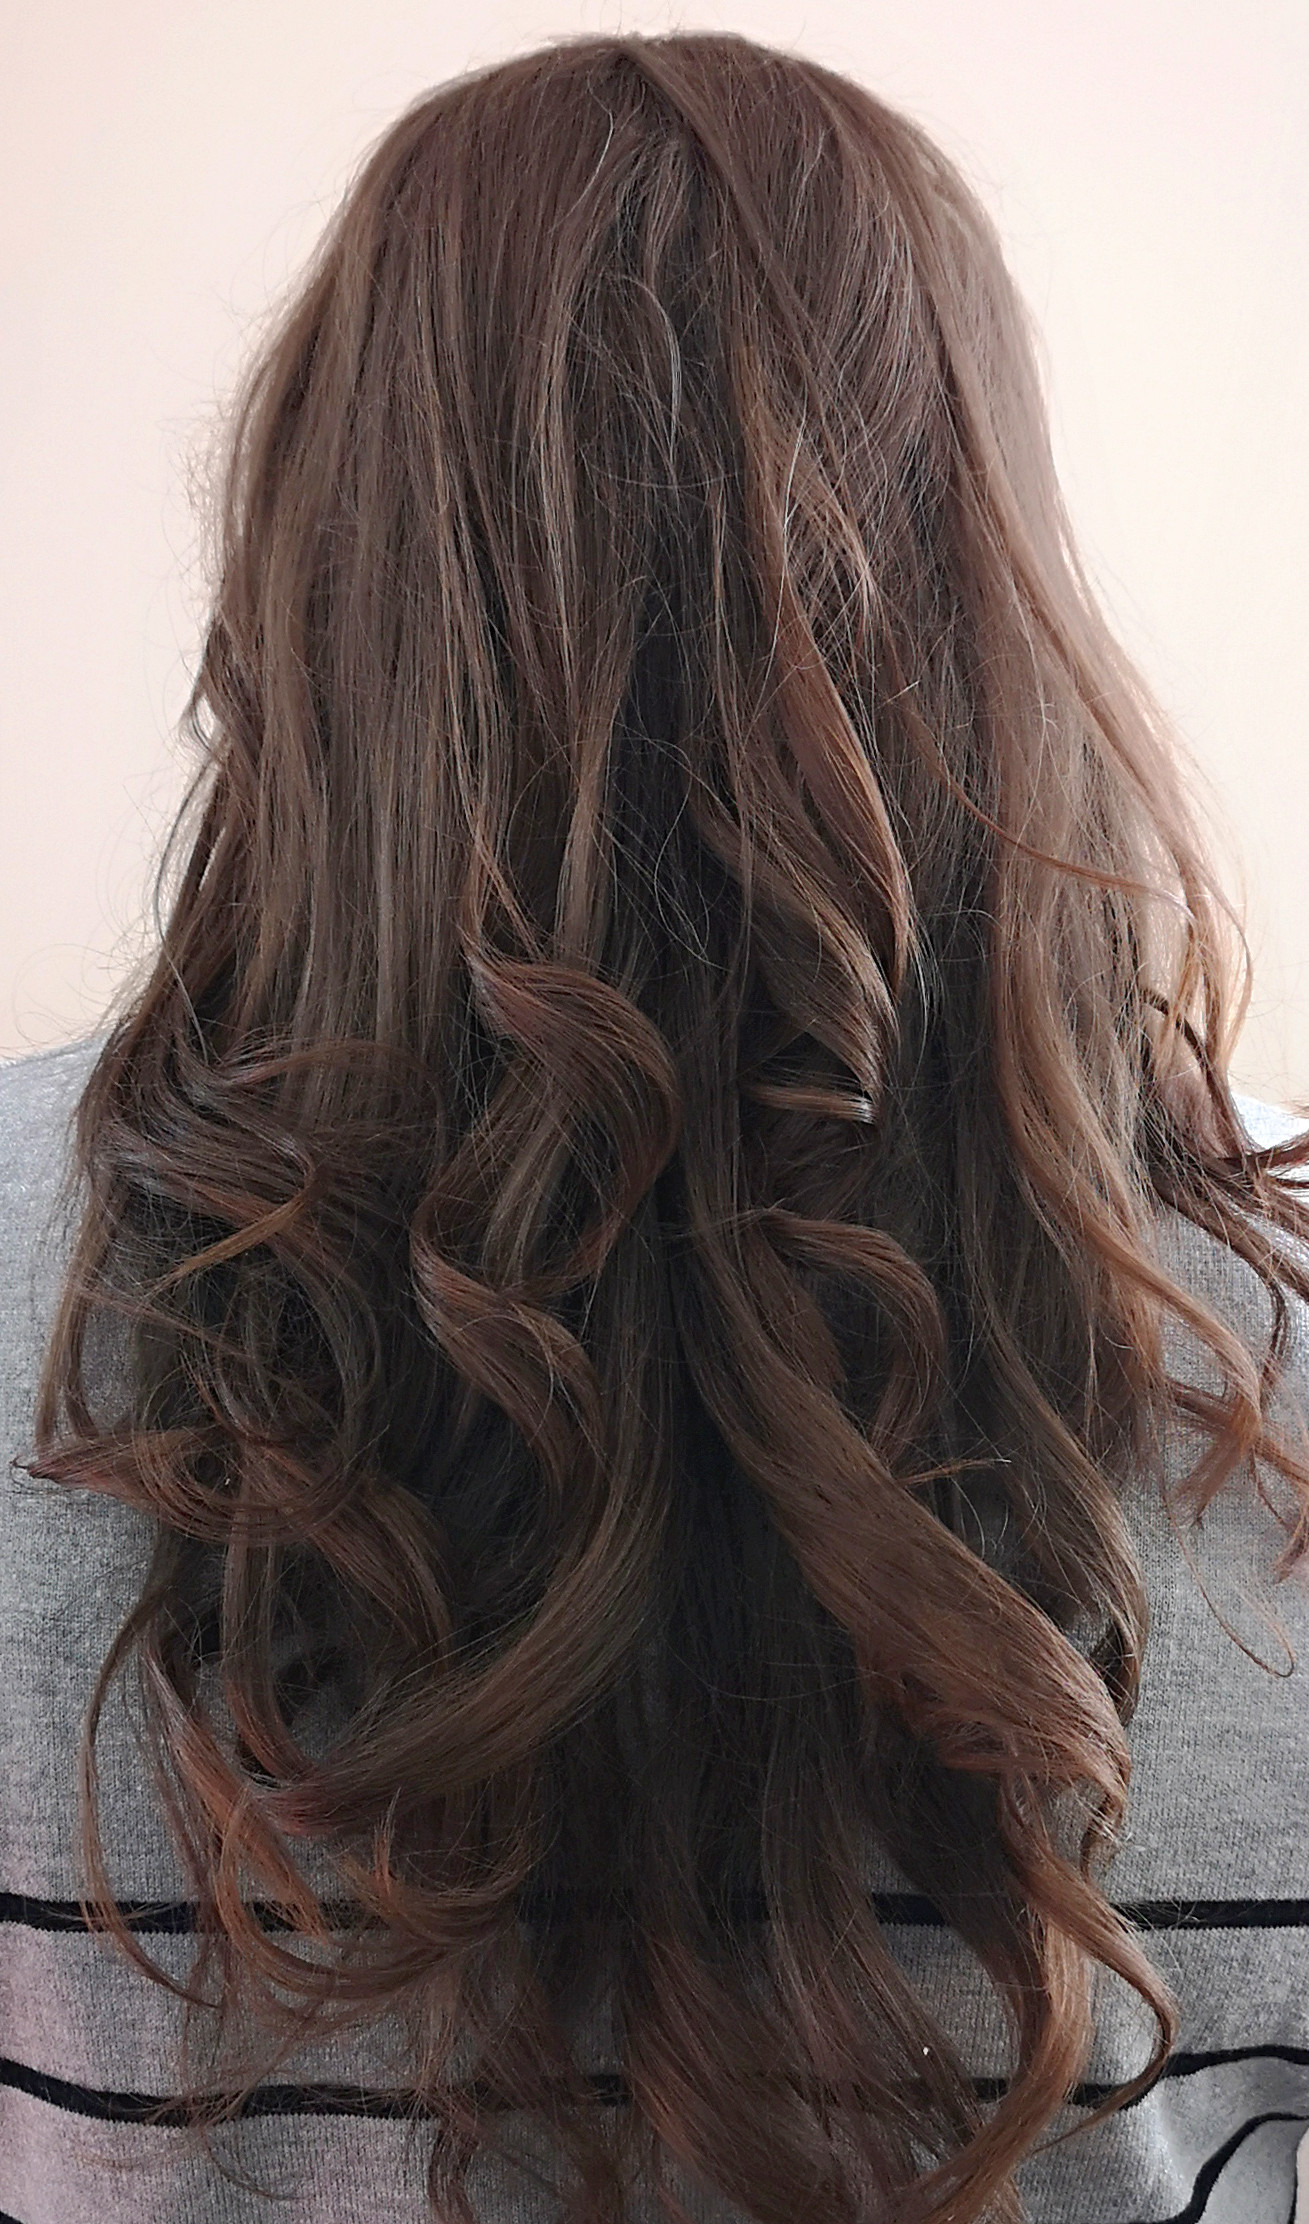 Add On Long/Thick Hair Colour